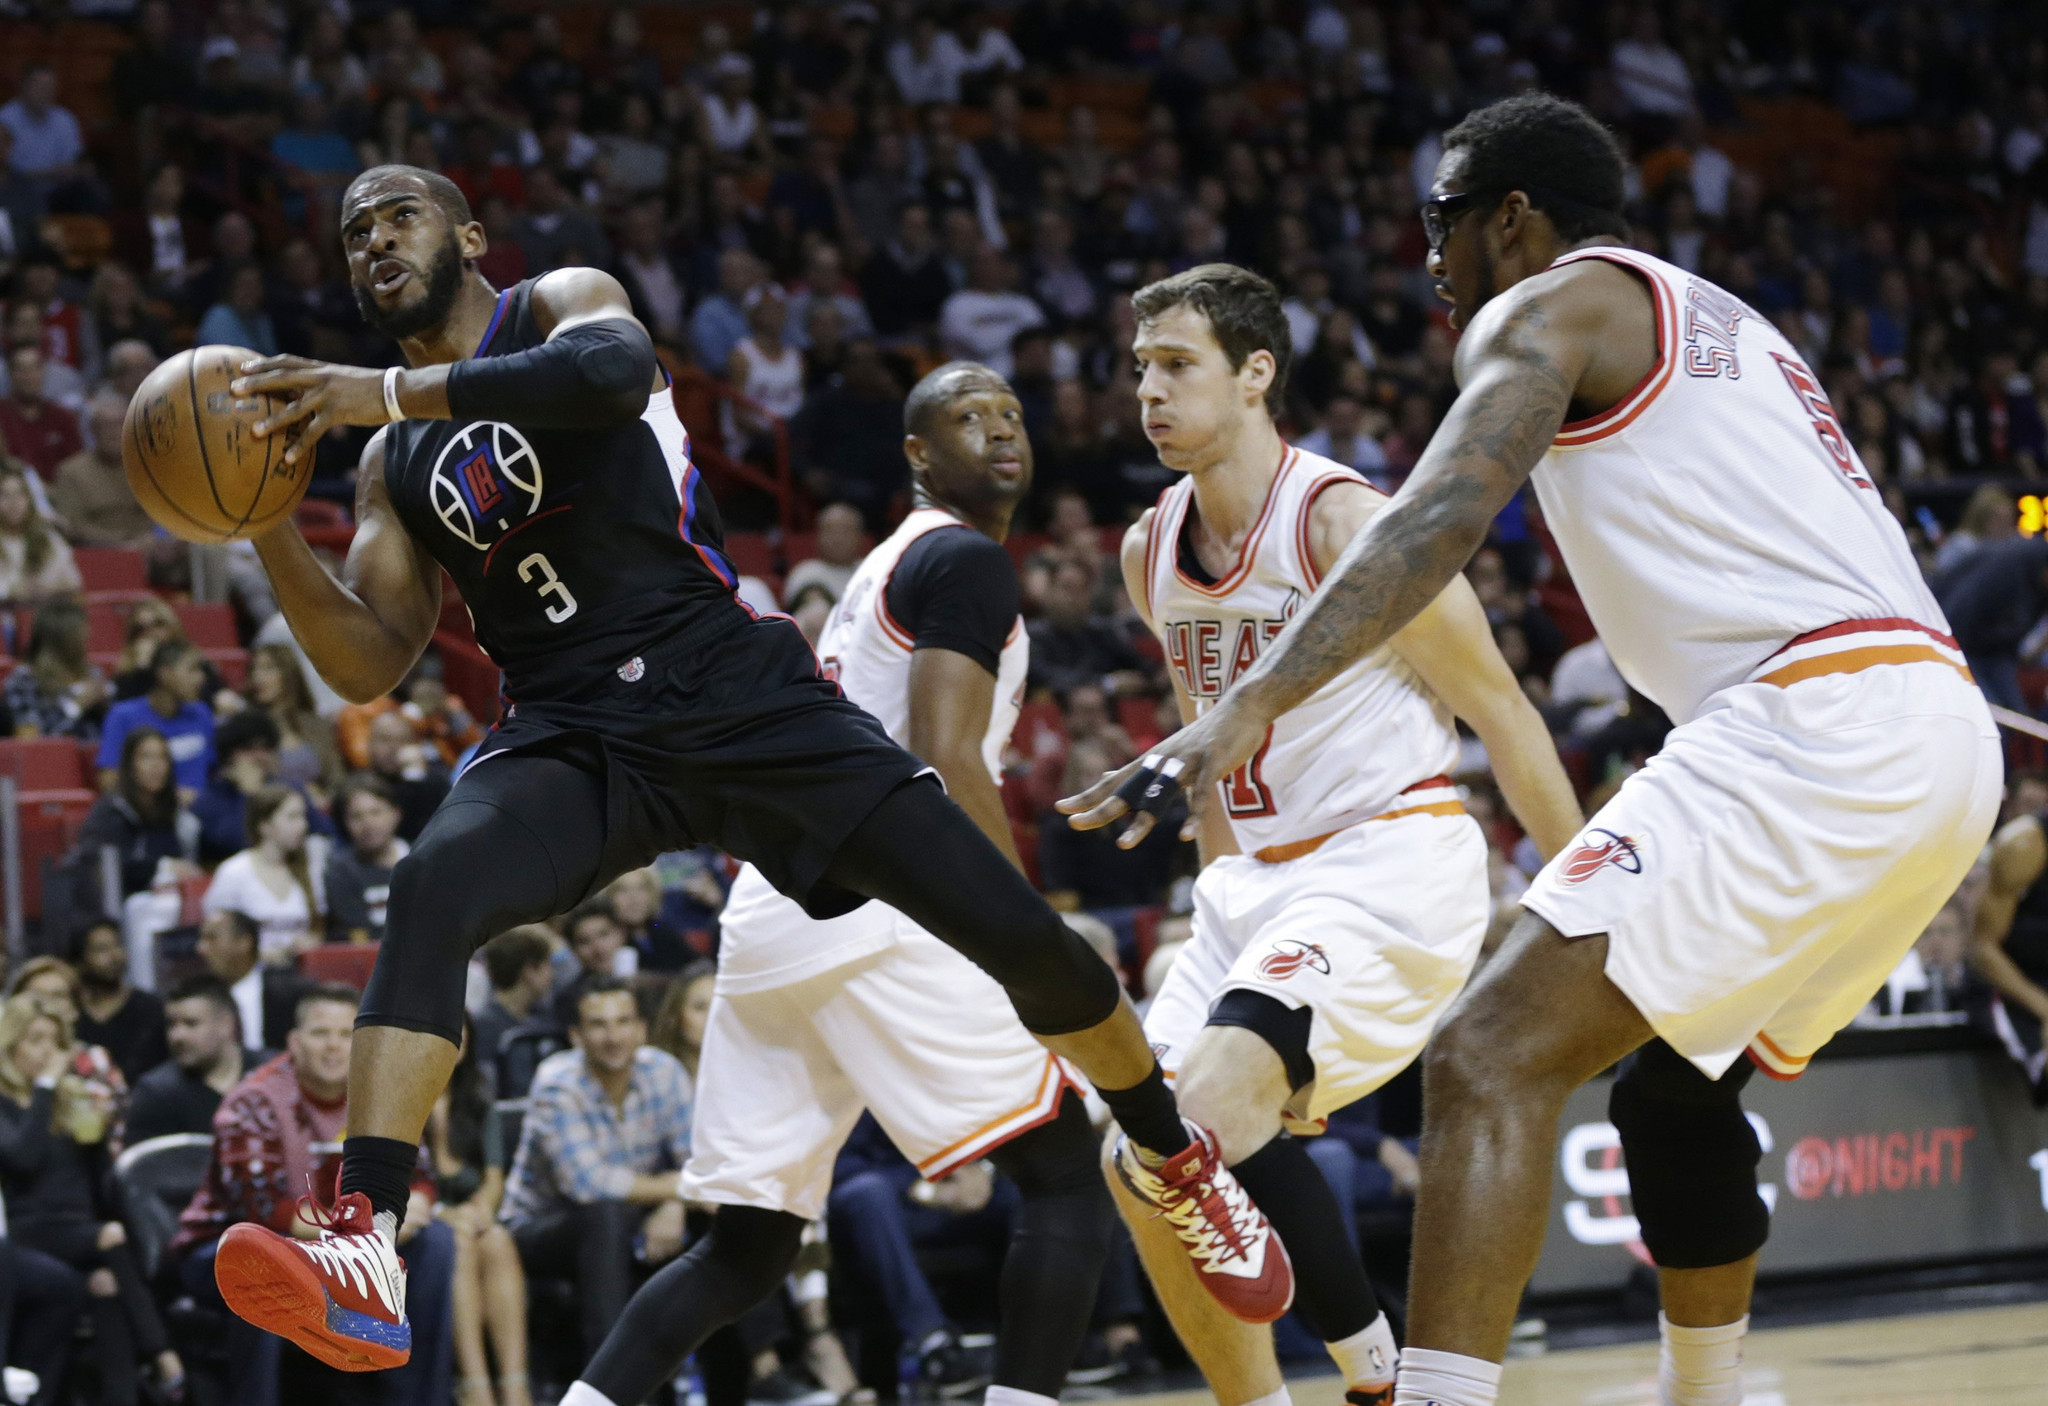 La-sp-clippers-heat-20160208